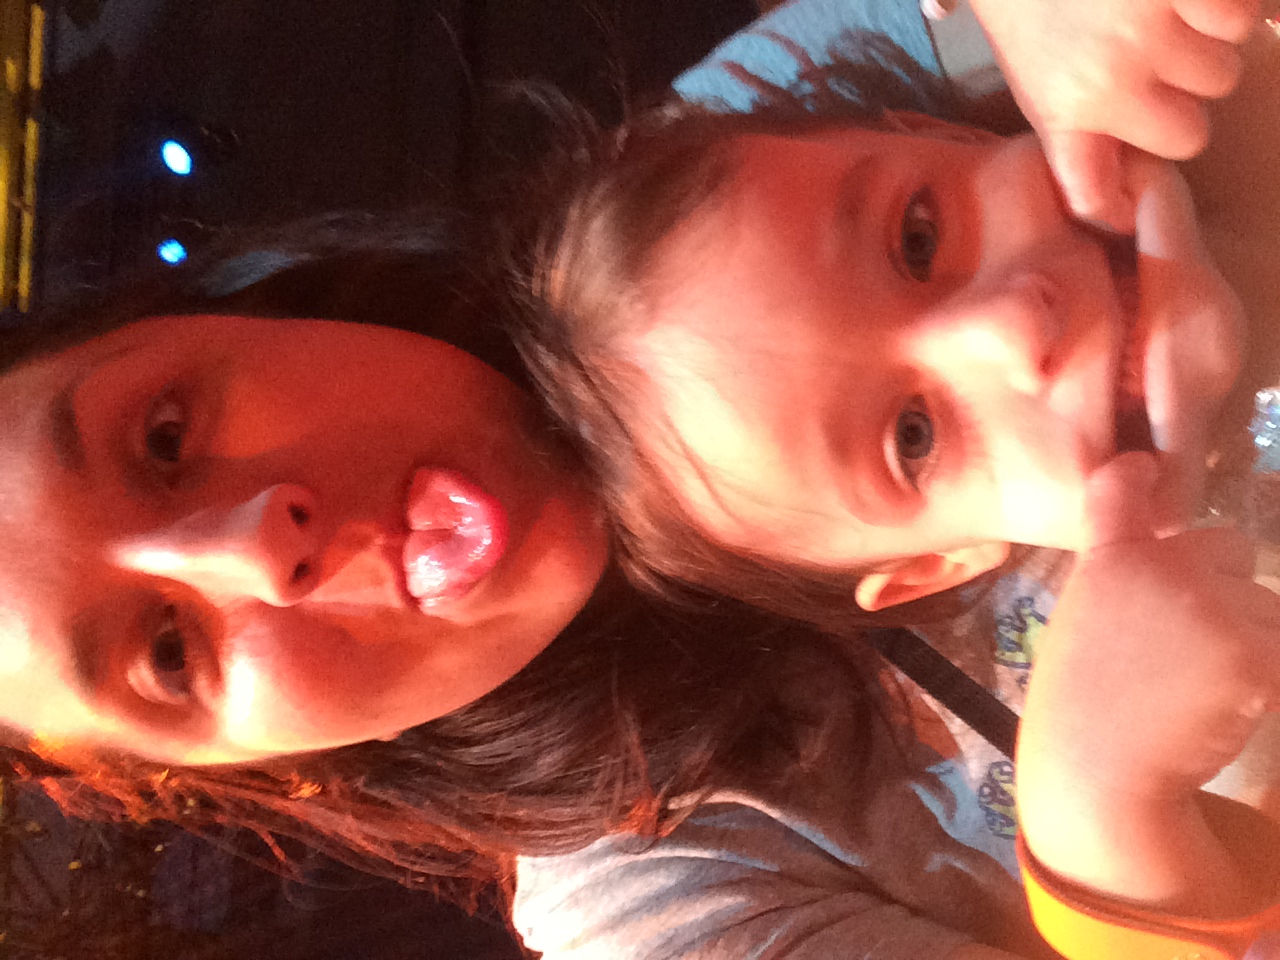 Making selfie faces waiting for the Disney Junior show